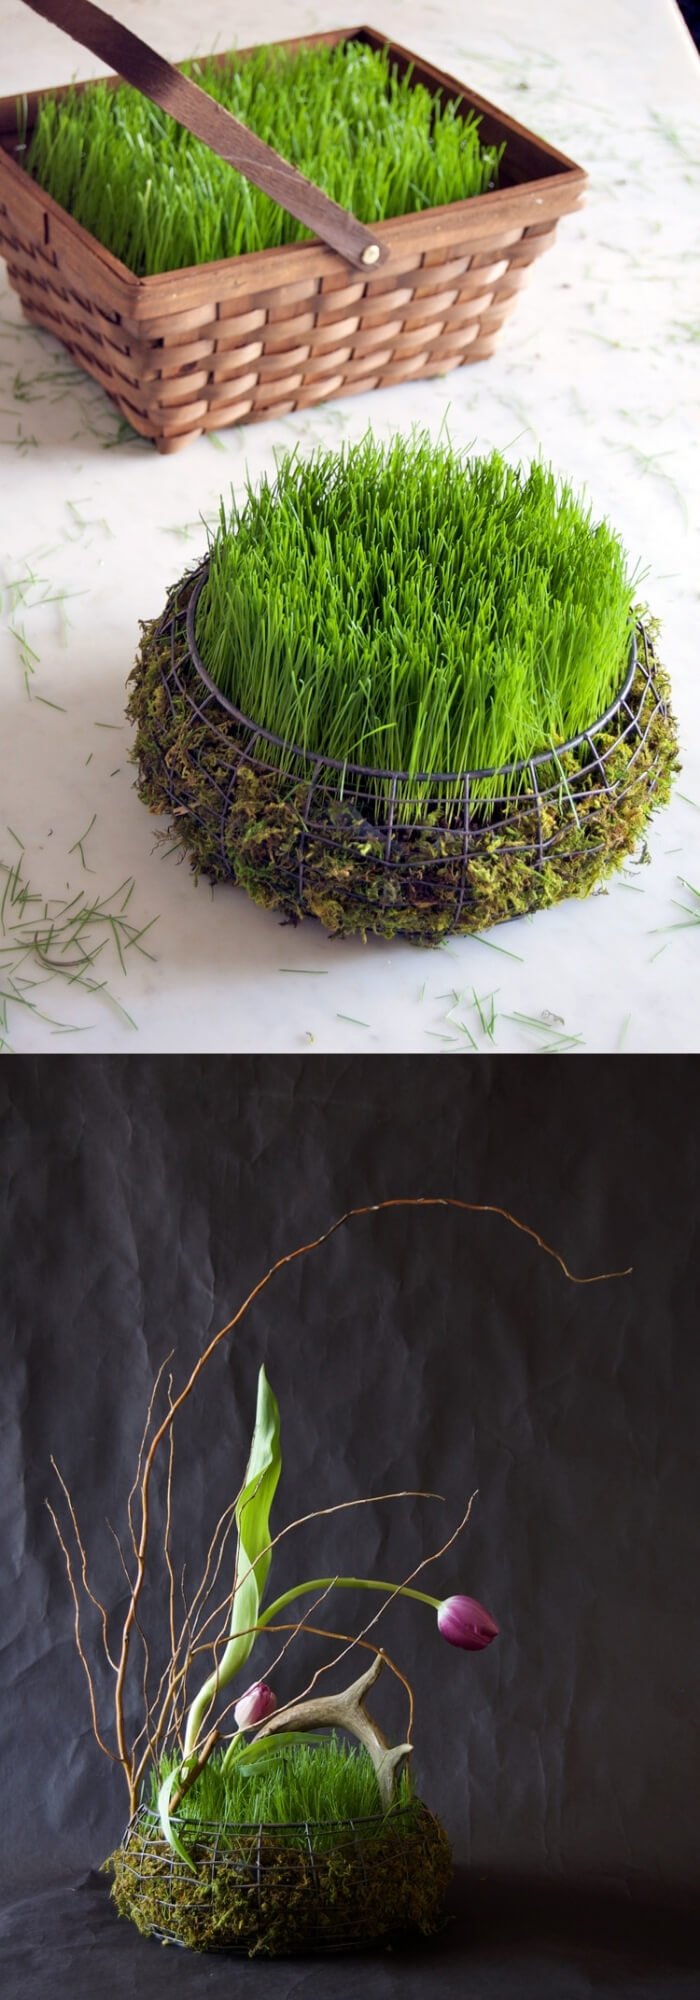 Easter basket filled with grass in 5 days   Creative Easter Garden Projects & Ideas Your Kids Will Love